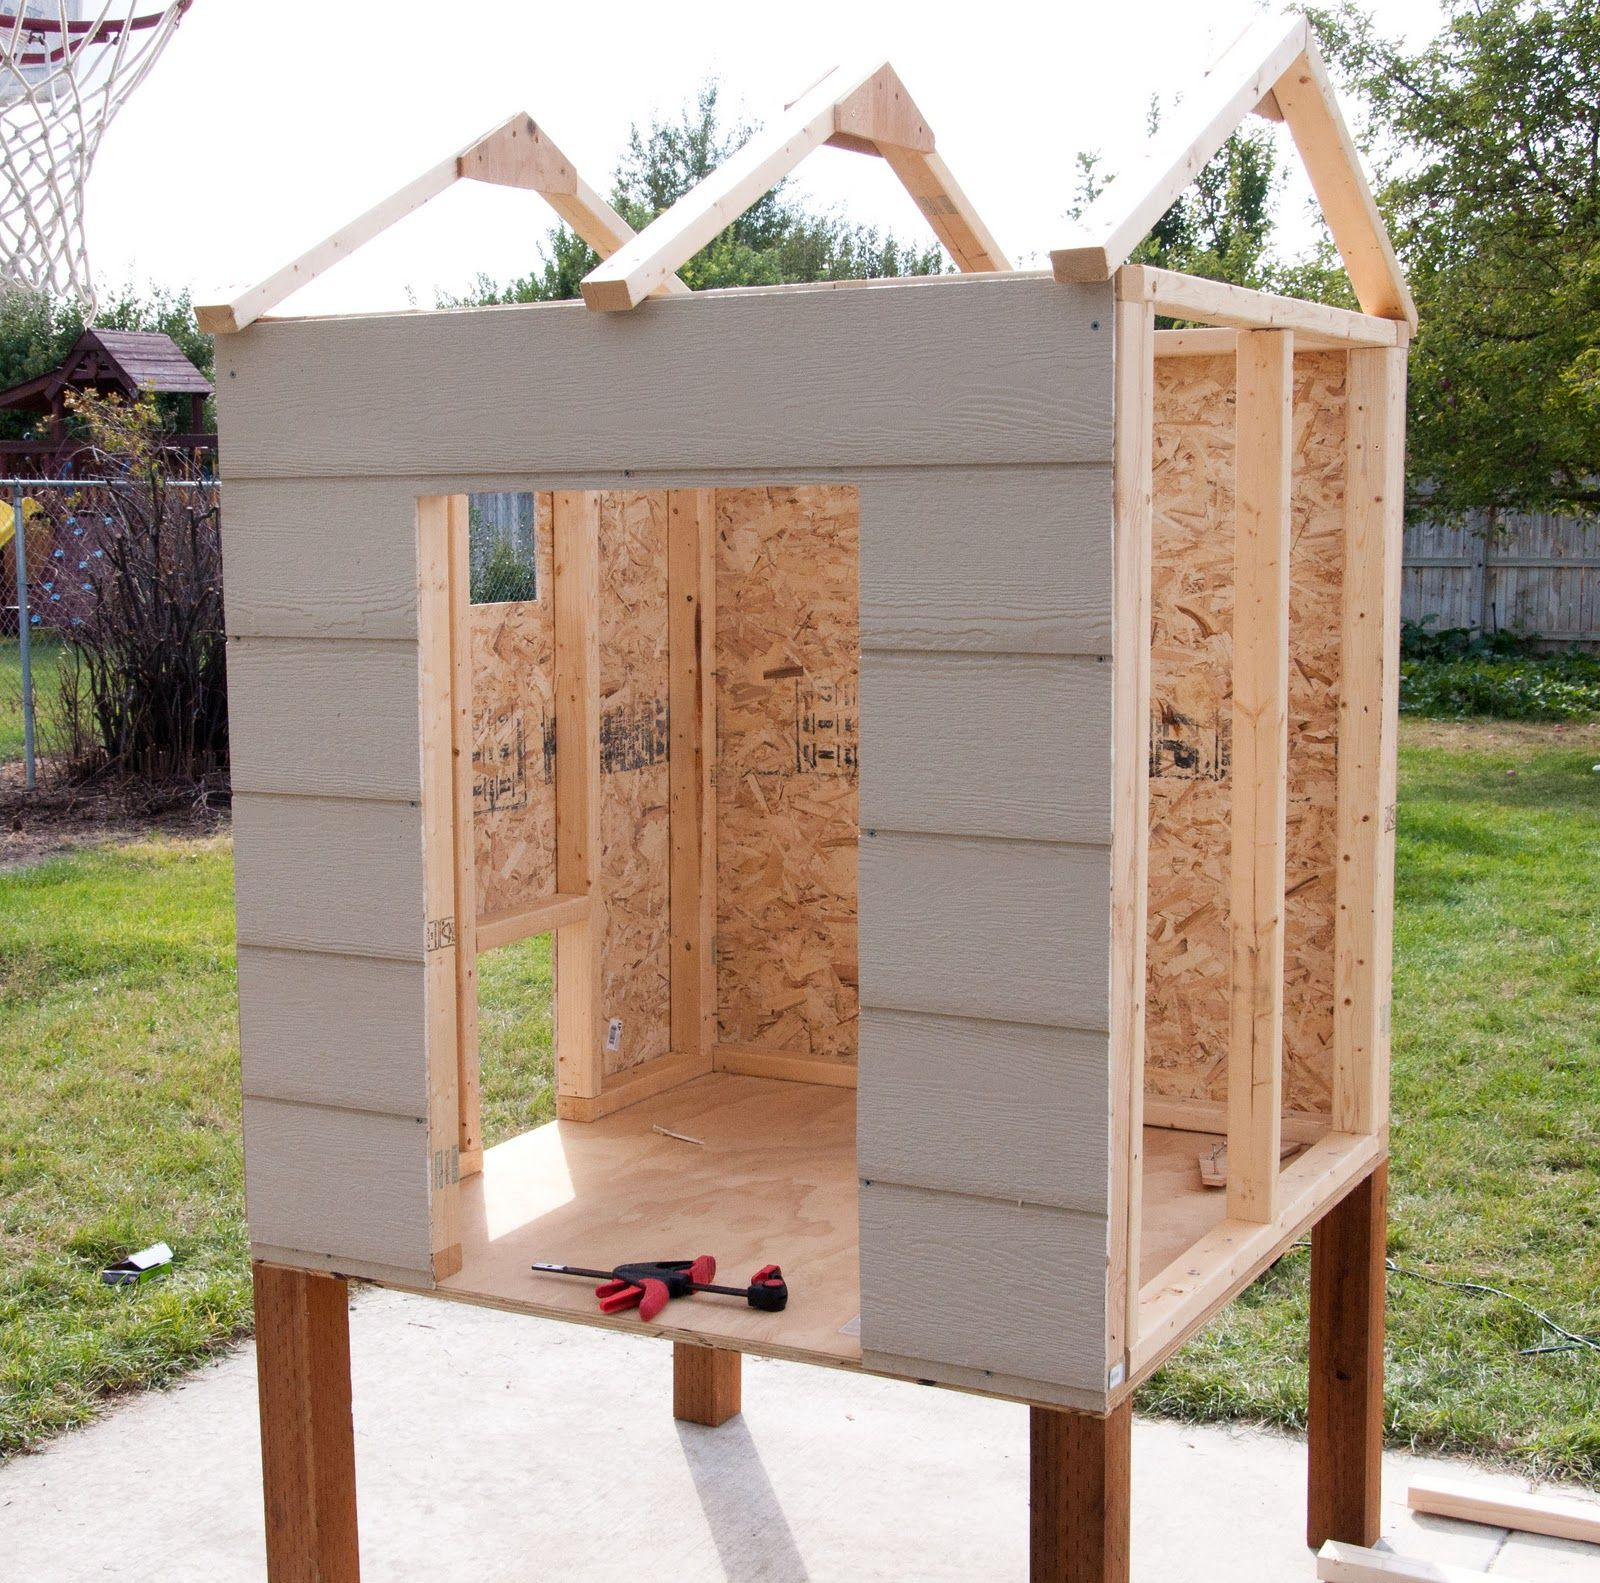 Wonderful Diy Recycled Chicken Coops: 5 Simple Steps On How To Build A Backyard Chicken Coop